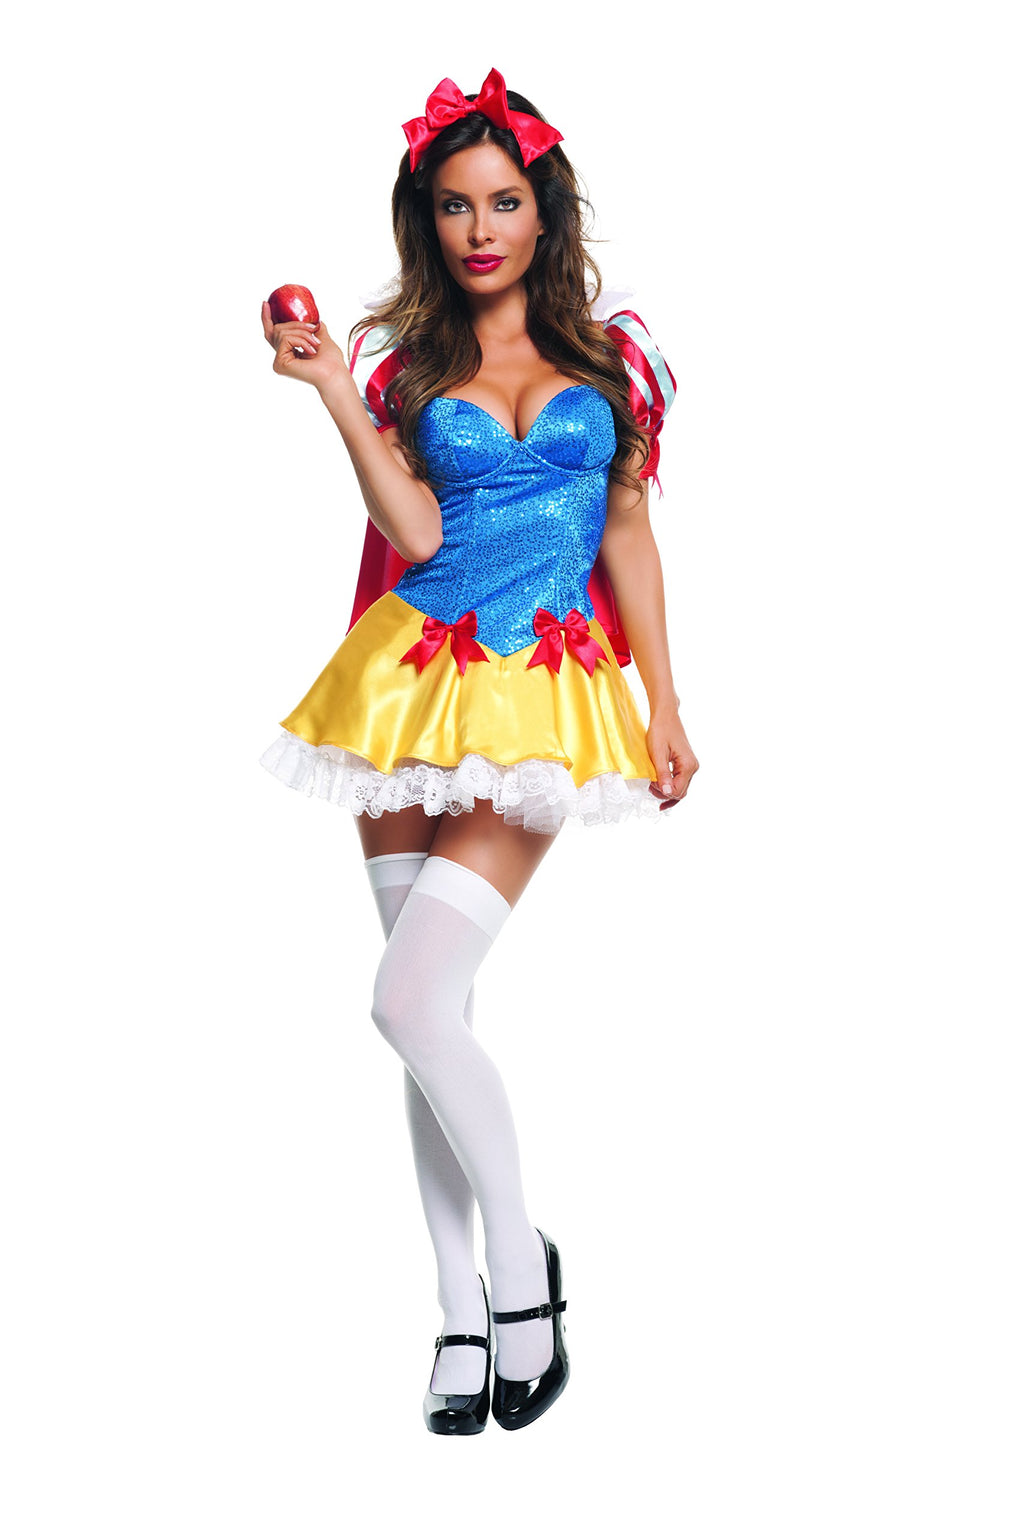 Starline Women's Sequin Snow White Costume Womens Adult Sized Costumes - Nastassy